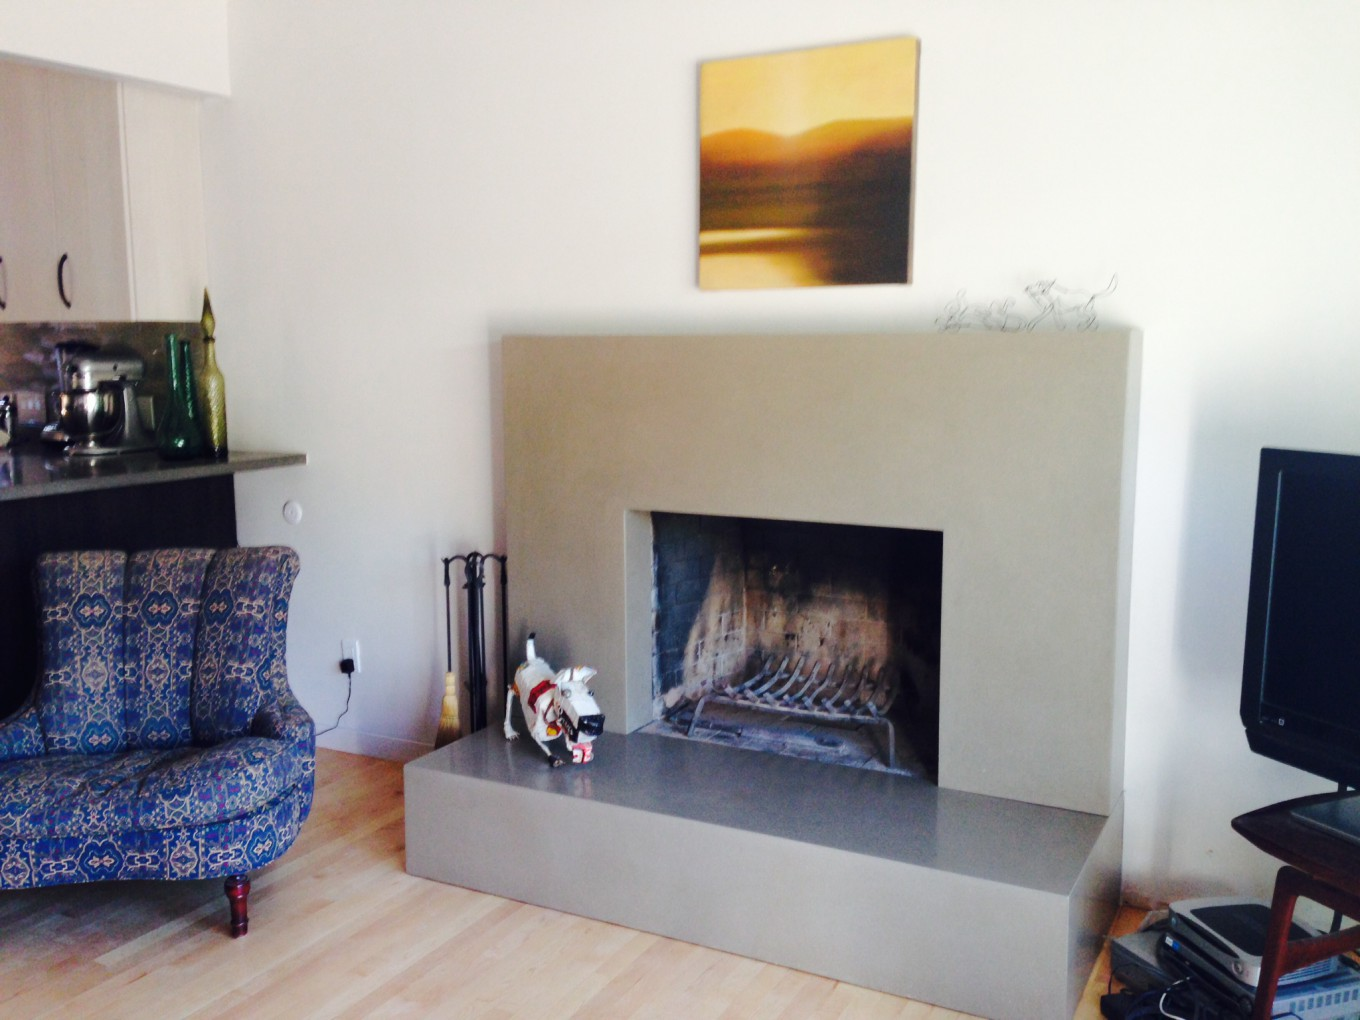 Fireplace Transformed